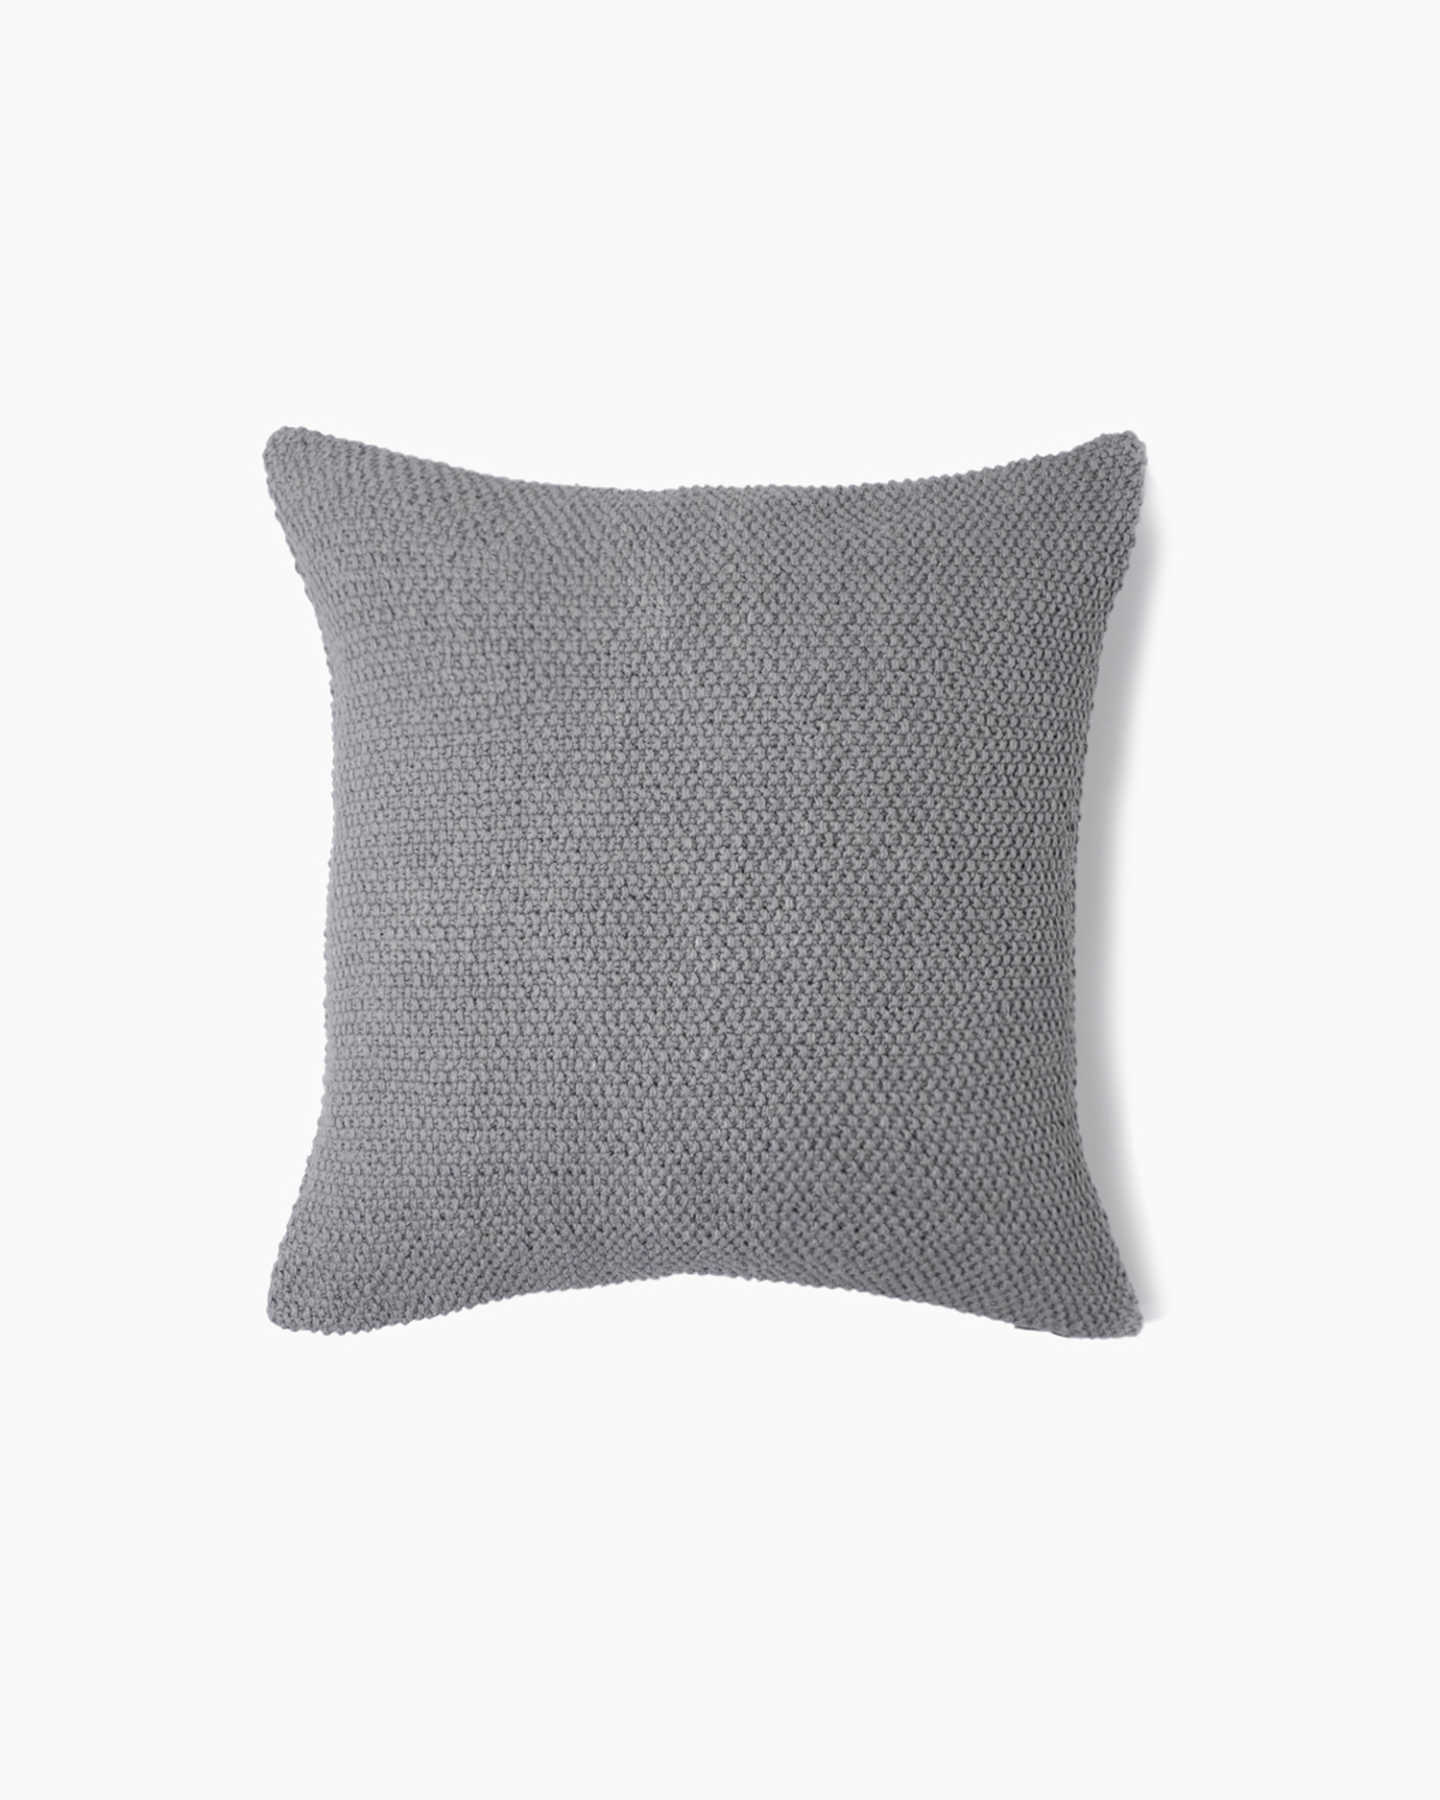 Textured Cotton Pillow Cover - Grey